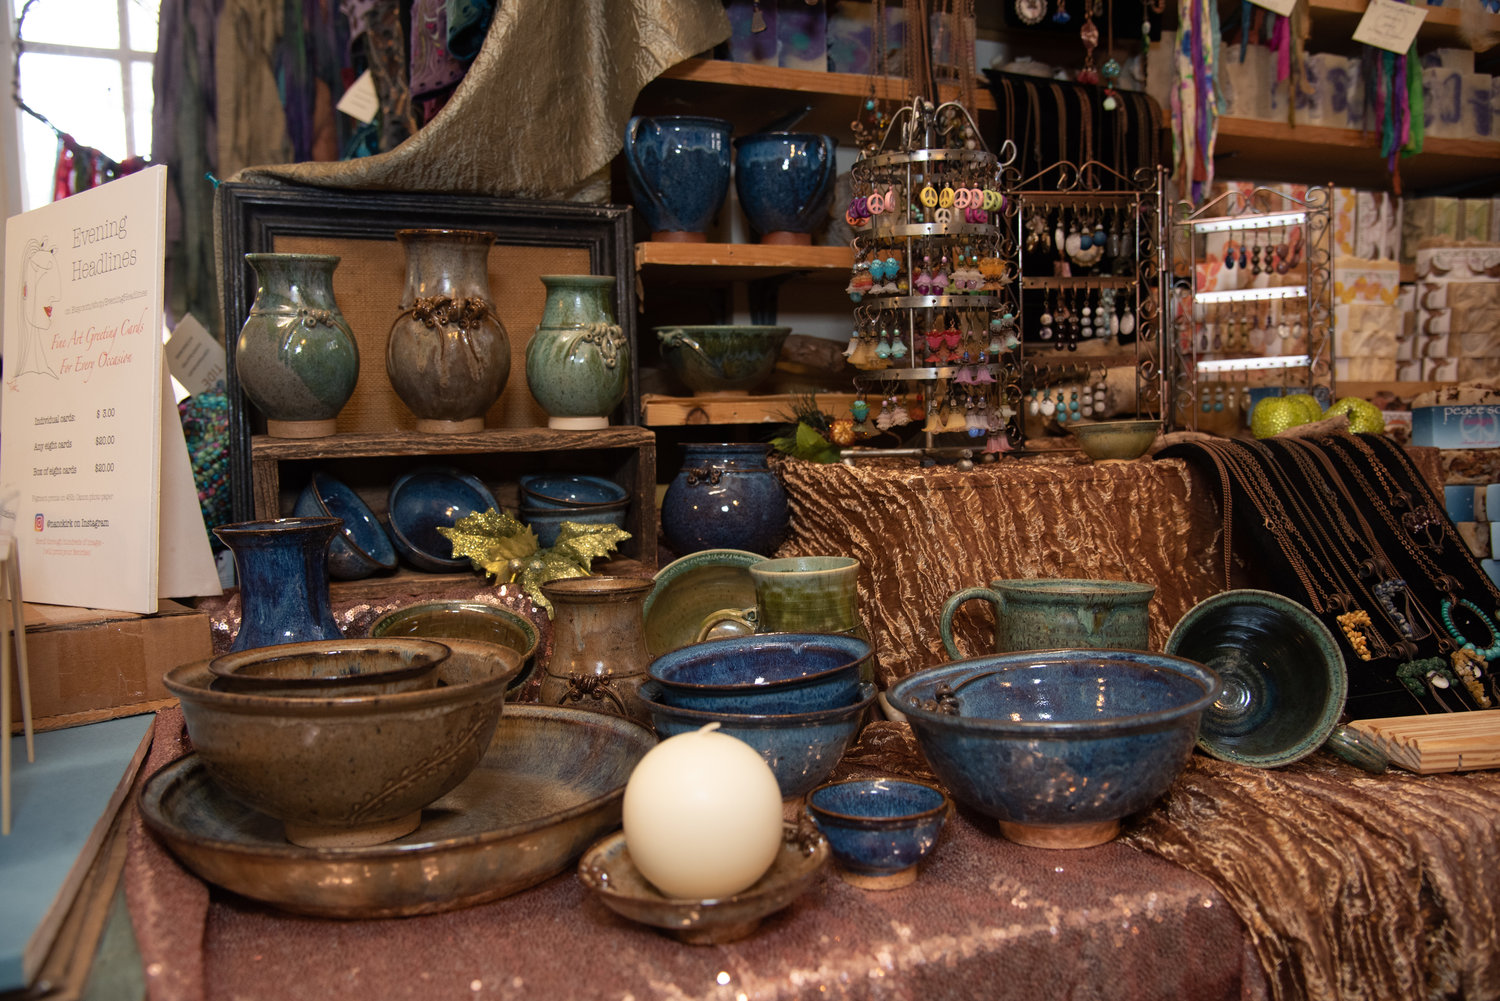 Shop from home goods, such as artisan tableware, at the holiday boutique.